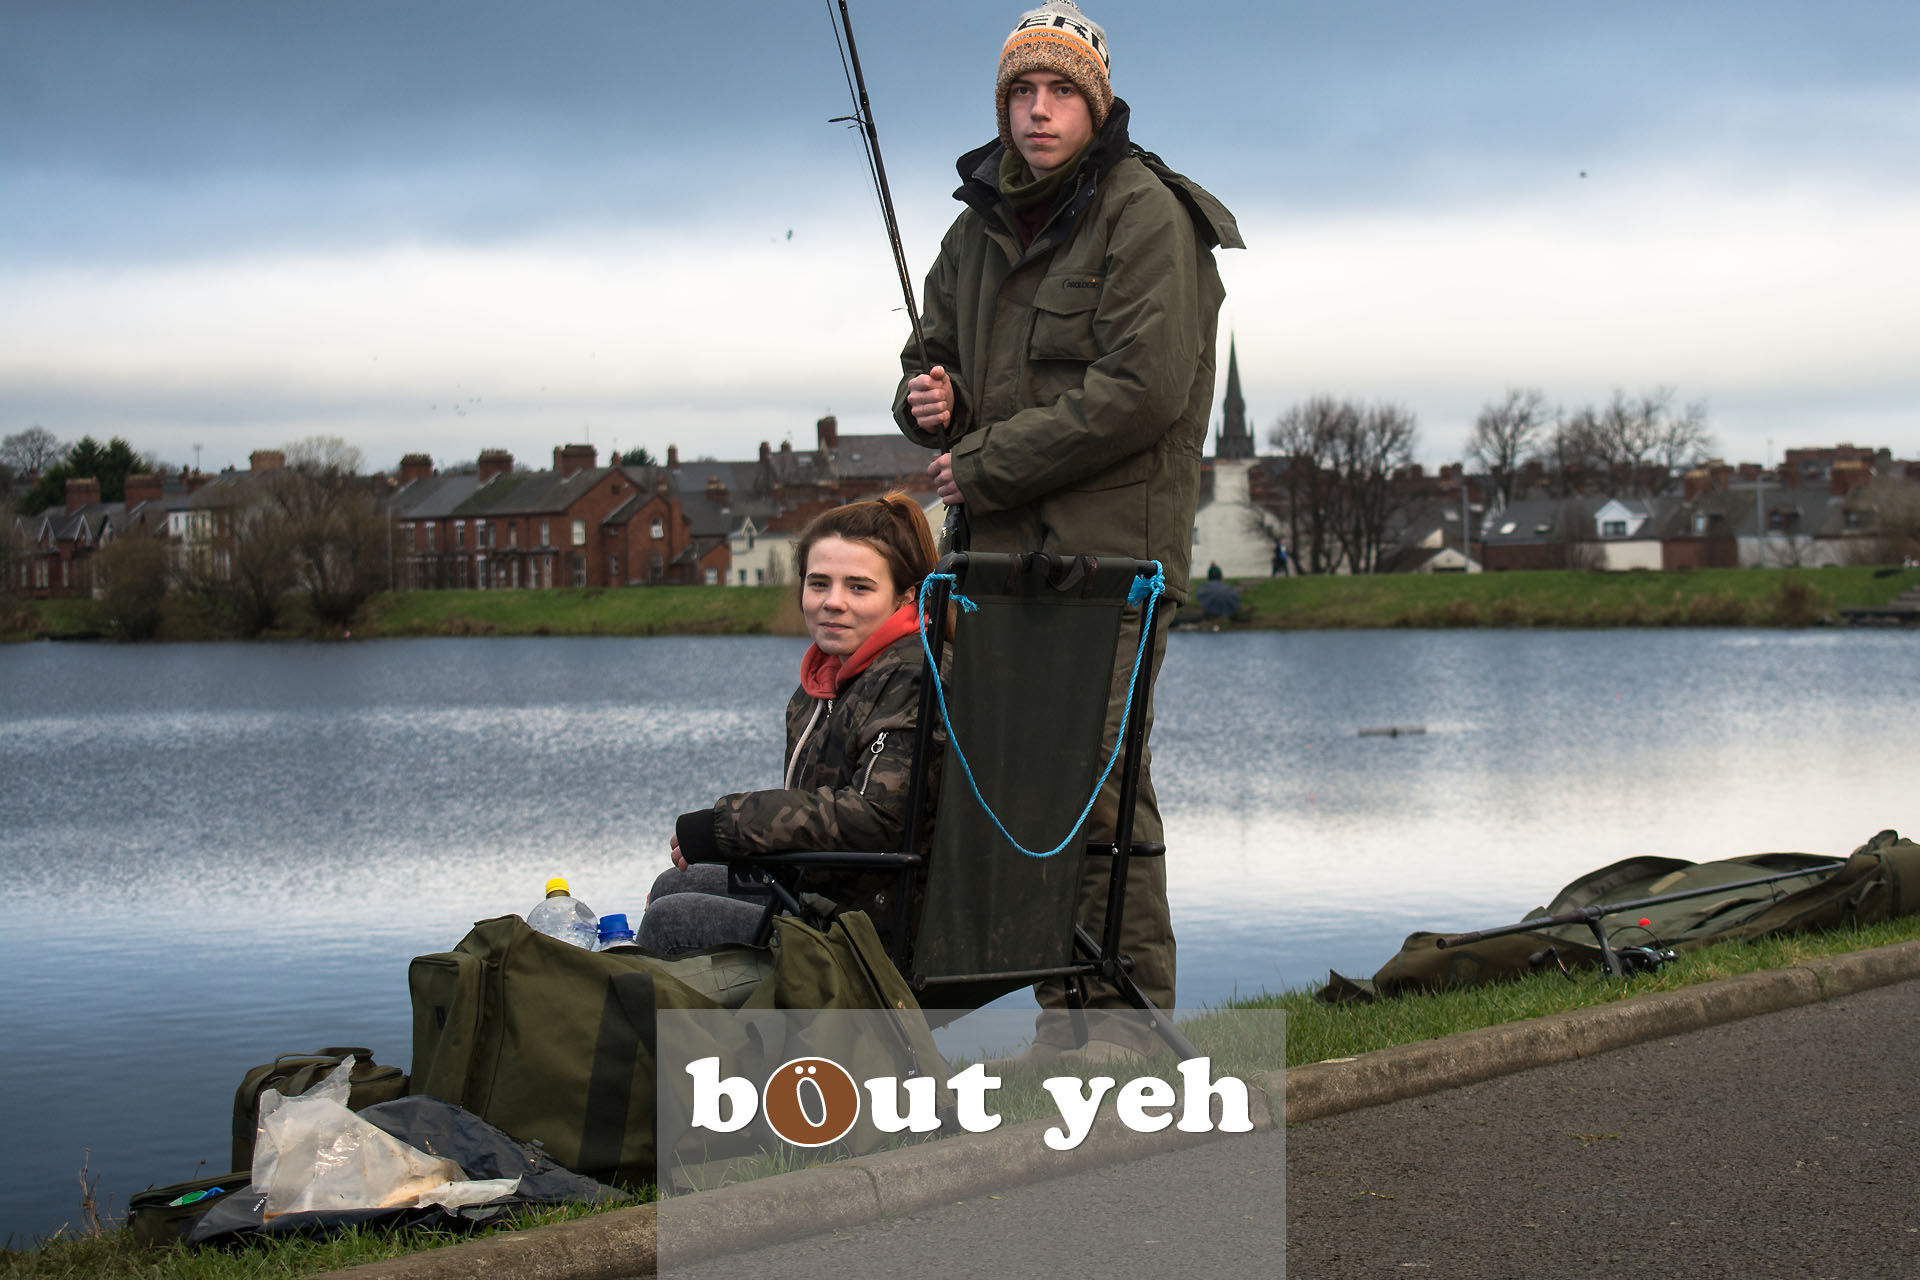 Young couple fishing at Waterworks, Belfast, Northern Ireland - bout yeh photographers Belfast photo 3943.